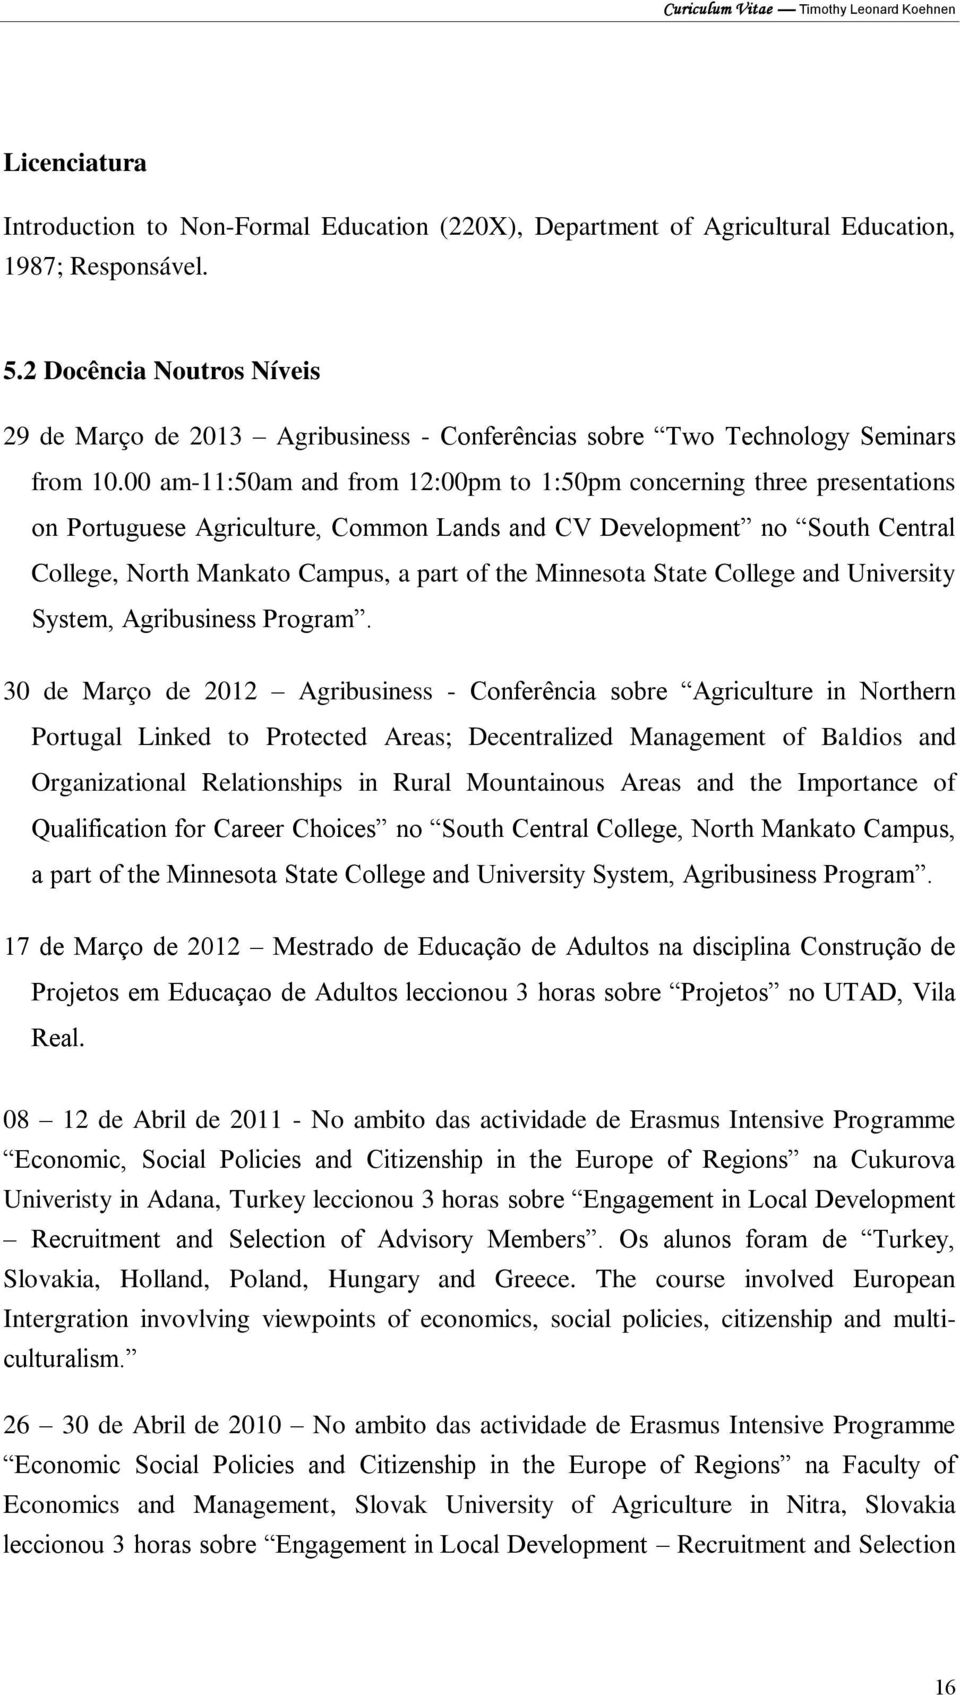 00 am-11:50am and from 12:00pm to 1:50pm concerning three presentations on Portuguese Agriculture, Common Lands and CV Development no South Central College, North Mankato Campus, a part of the